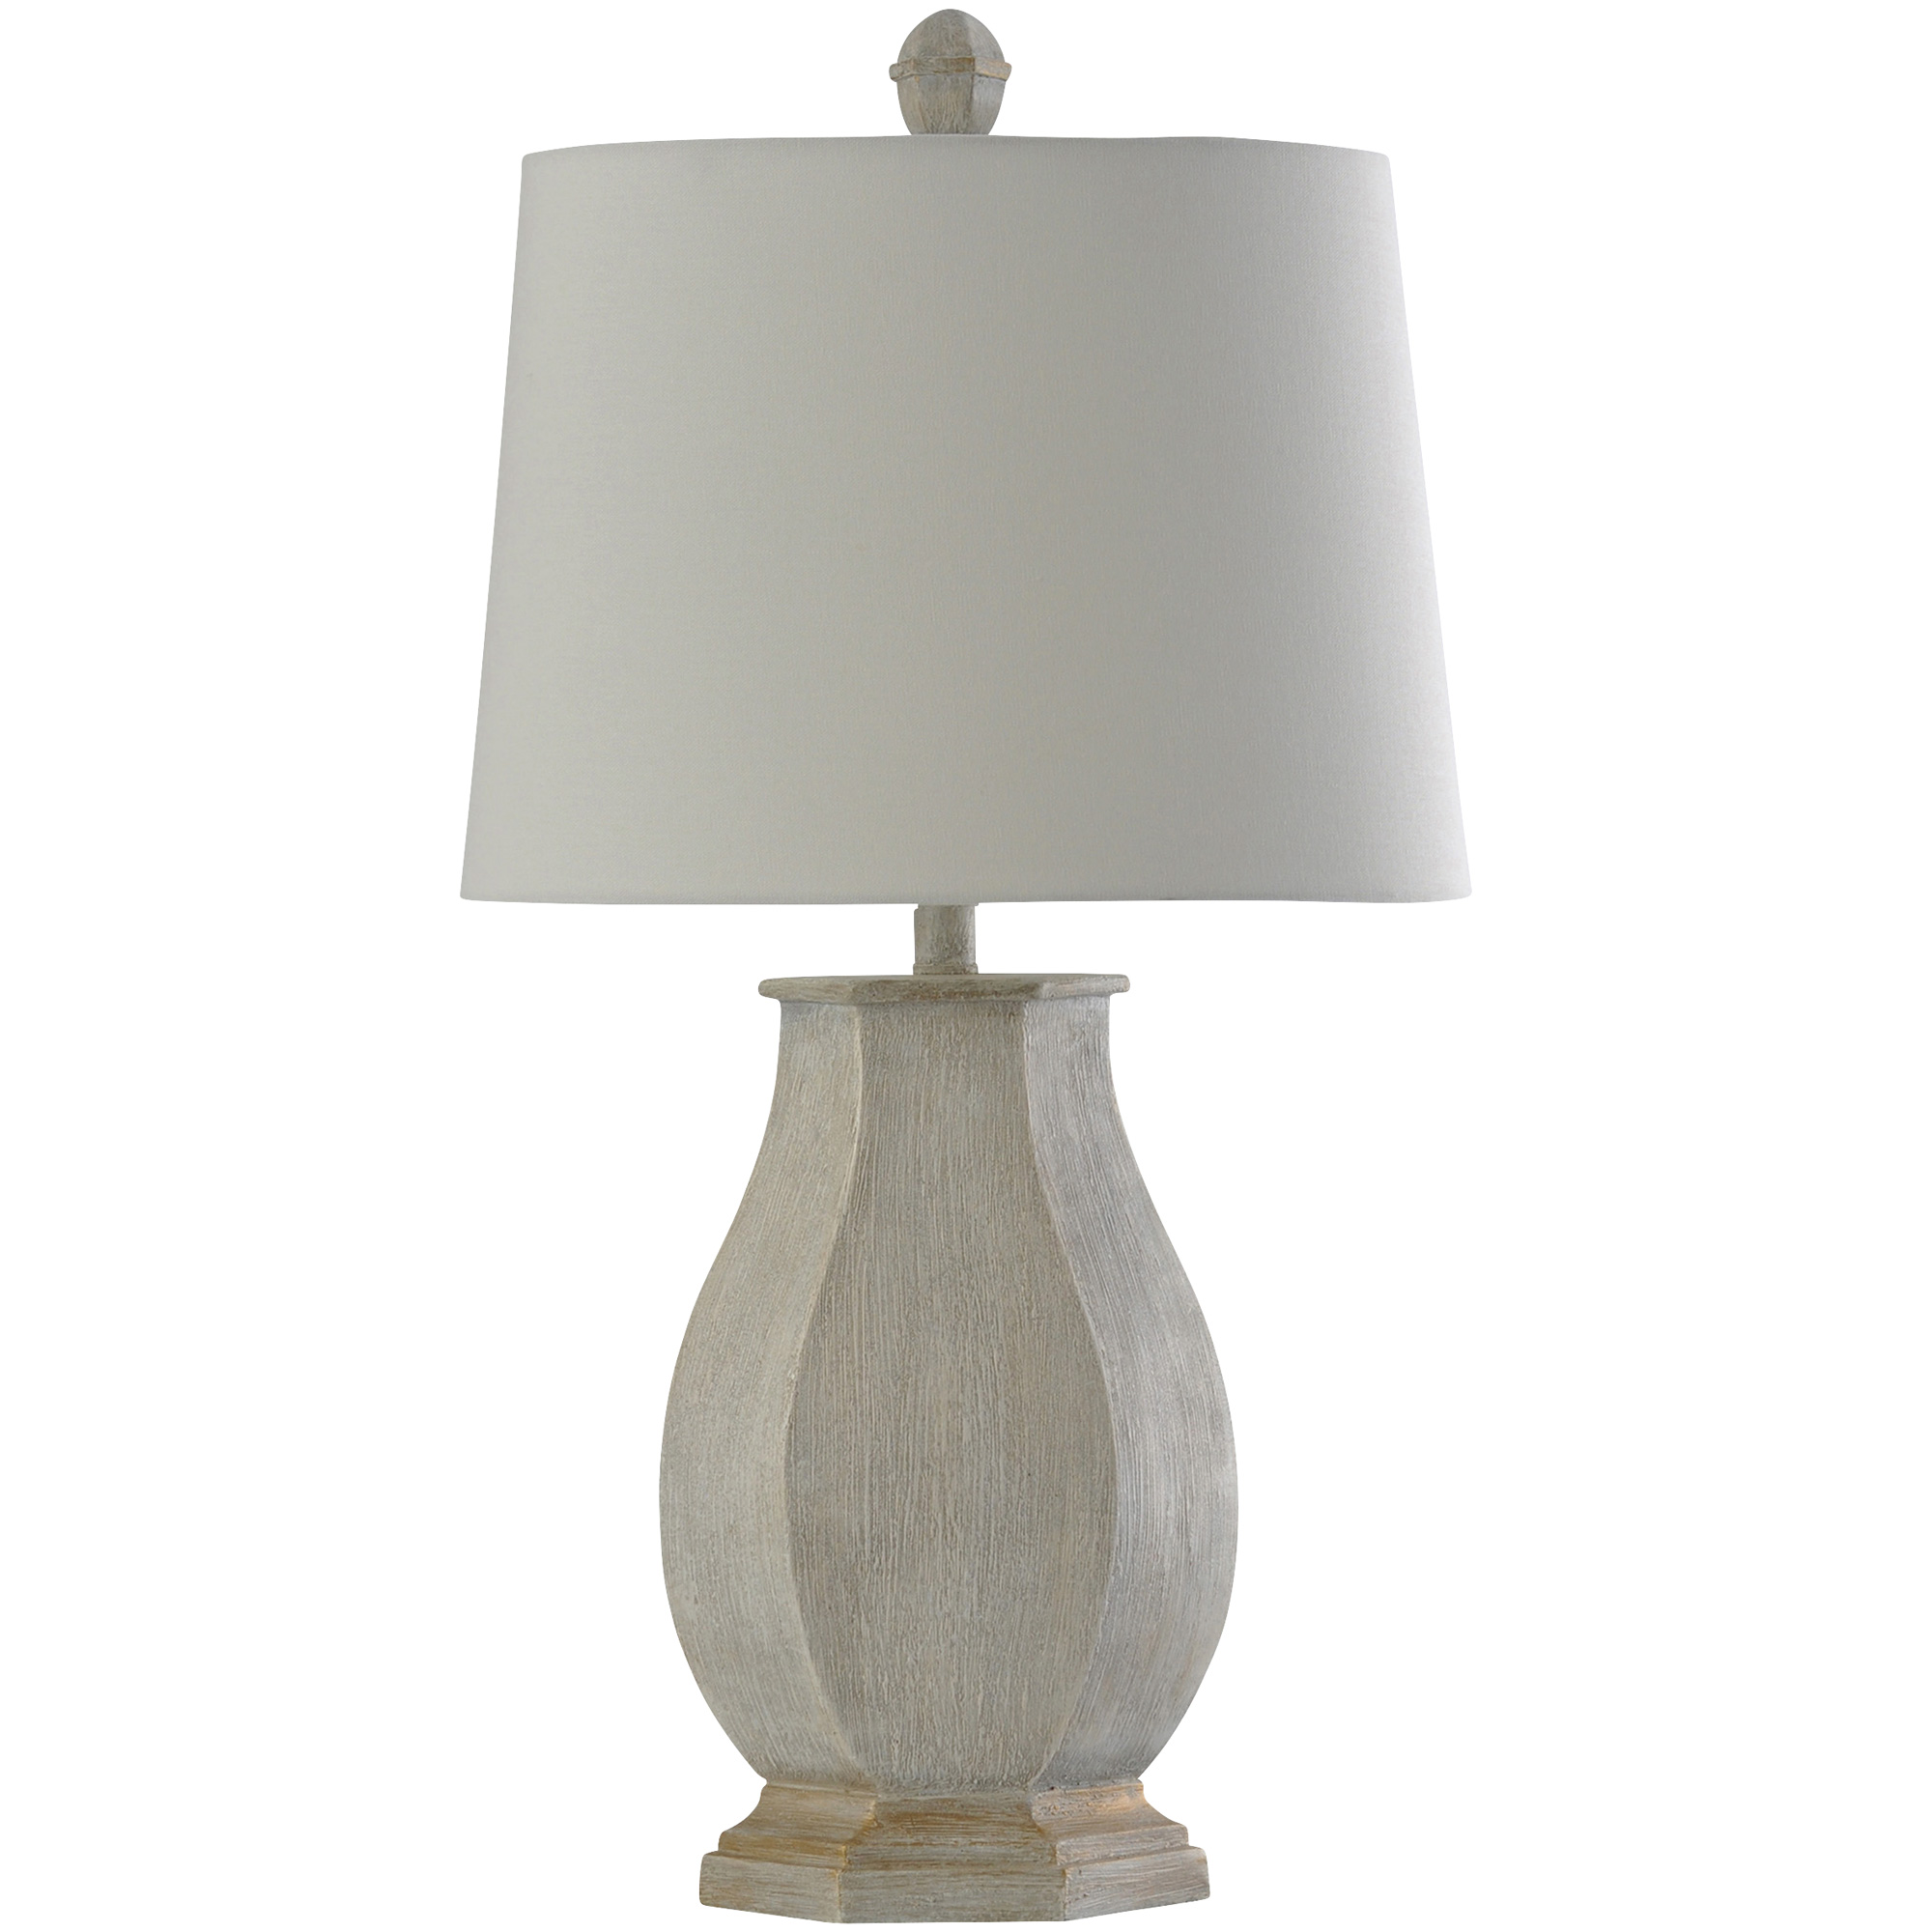 Stylecraft Home Collection | Basilica White Table Lamp